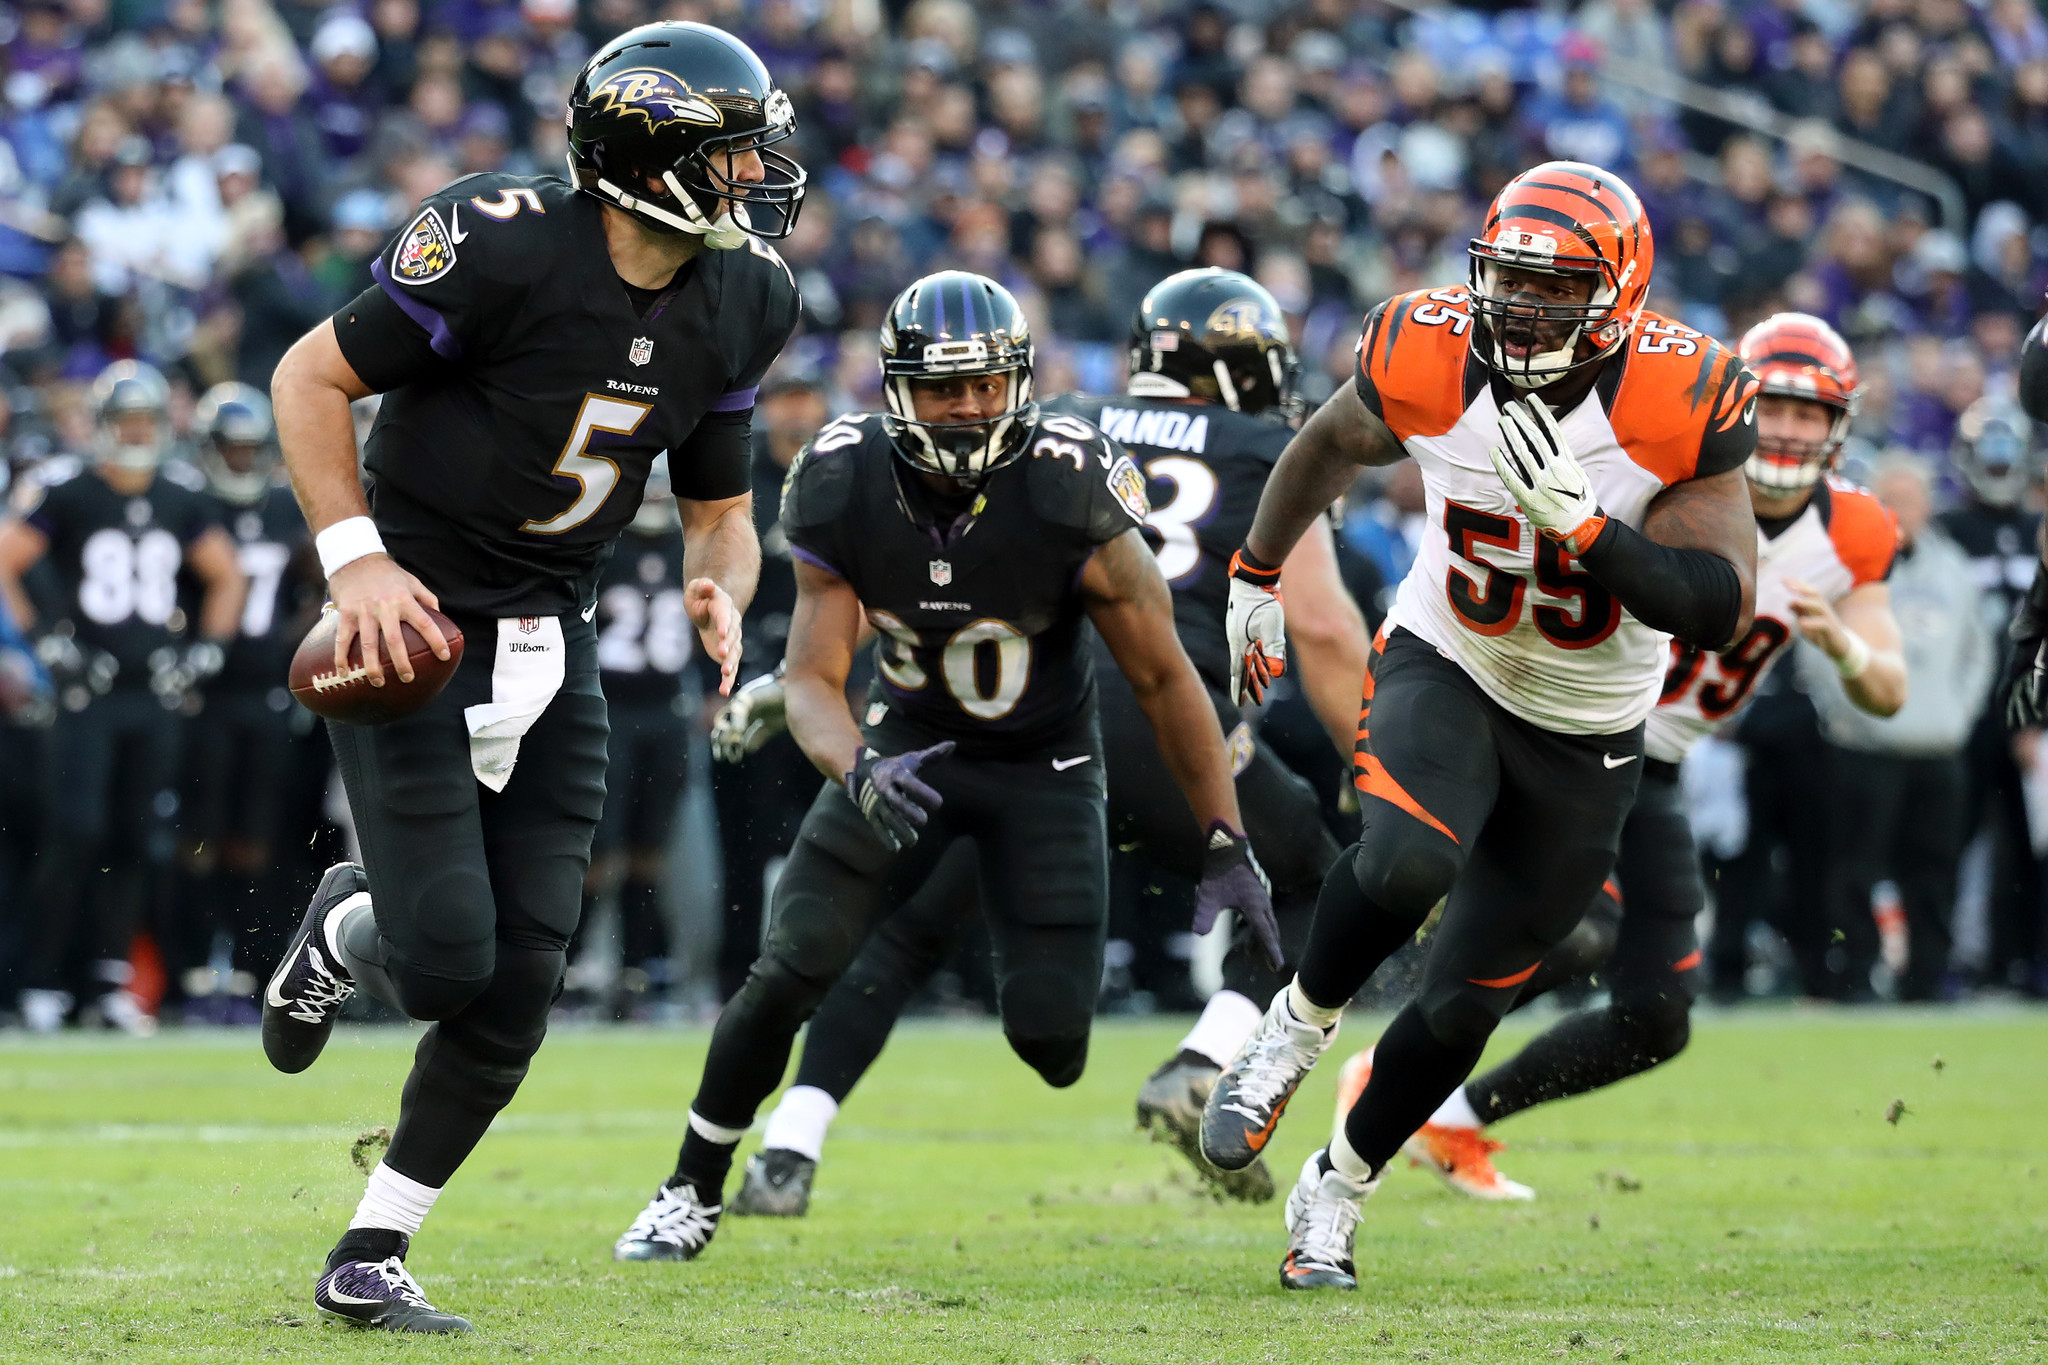 Bal-5-things-we-learned-from-the-ravens-19-14-win-over-the-cincinnati-bengals-20161127